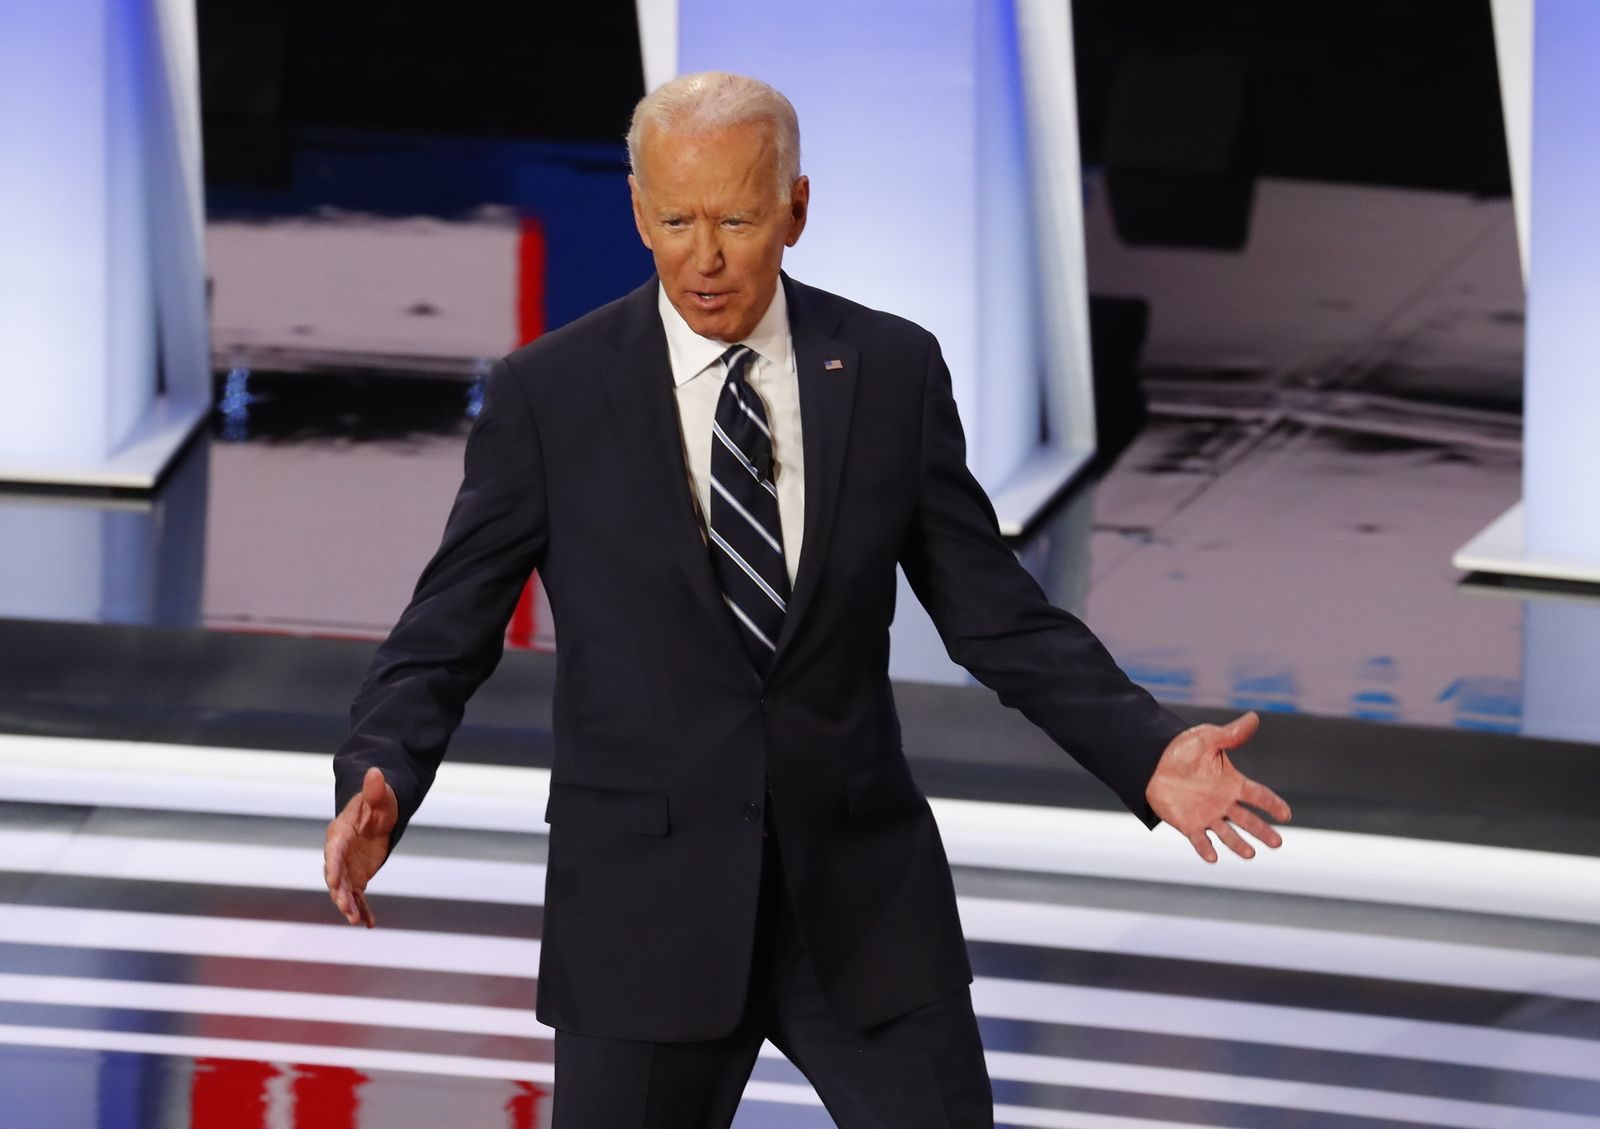 Former Vice President Joe Biden is introduced before the second of two Democratic presidential primary debates hosted by CNN Wednesday, July 31, 2019, in the Fox Theatre in Detroit. (AP Photo/Paul Sancya)